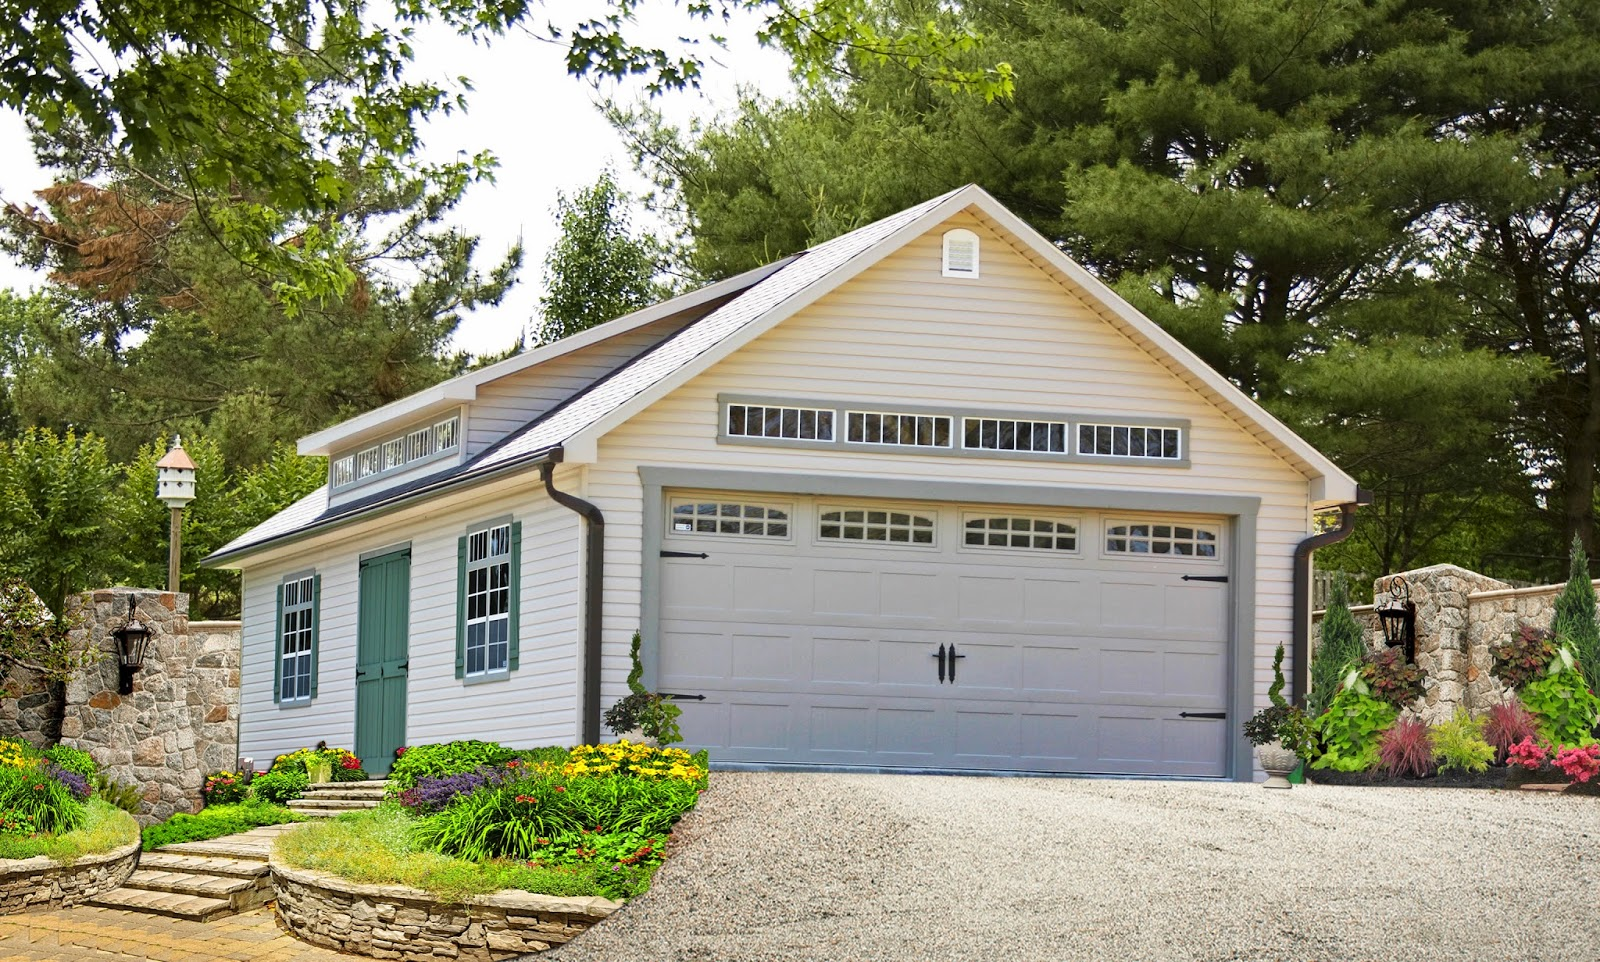 Garage For Sale Long Island Shed For Sale Long Island Ny Newshed Plans